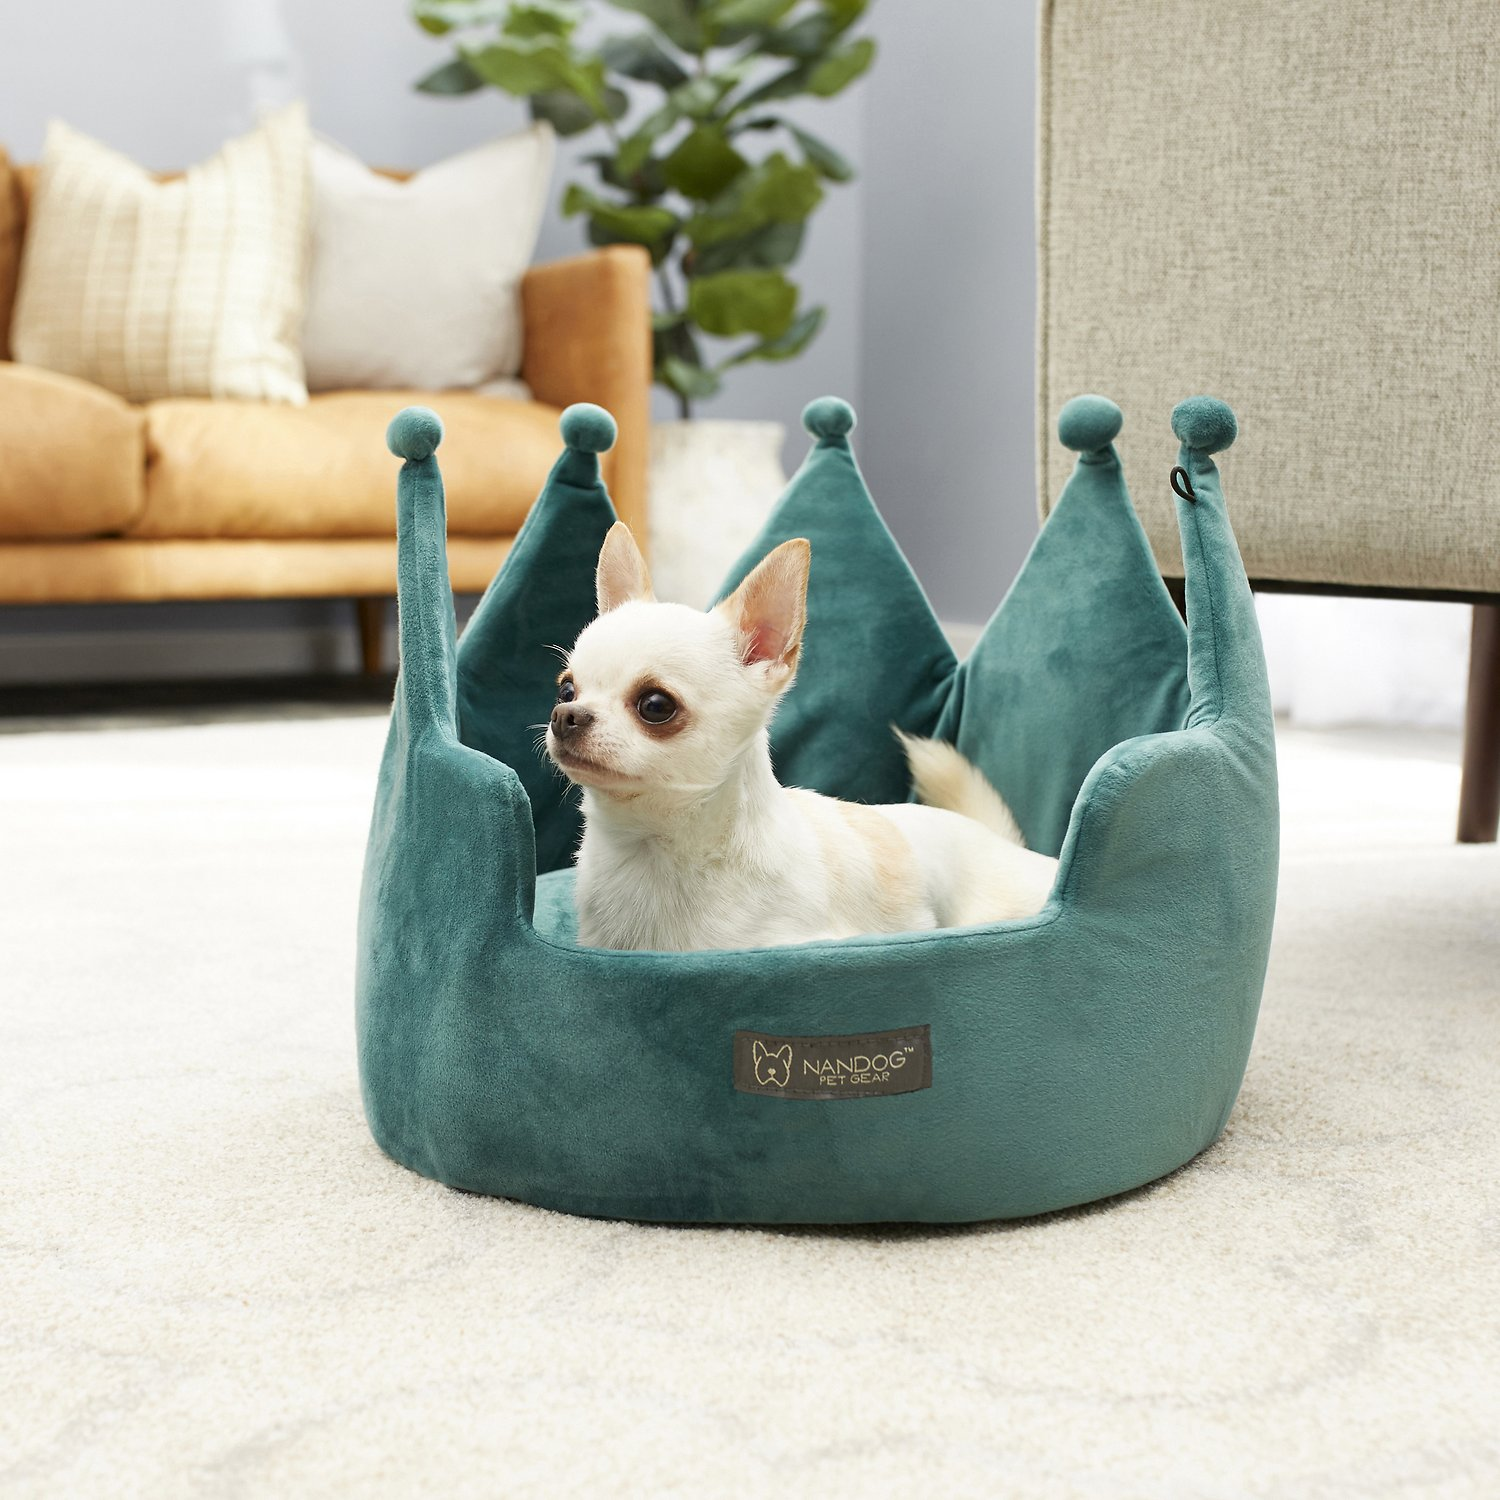 Admirable Nandog Crown Small Dog Cat Bed Teal Inzonedesignstudio Interior Chair Design Inzonedesignstudiocom